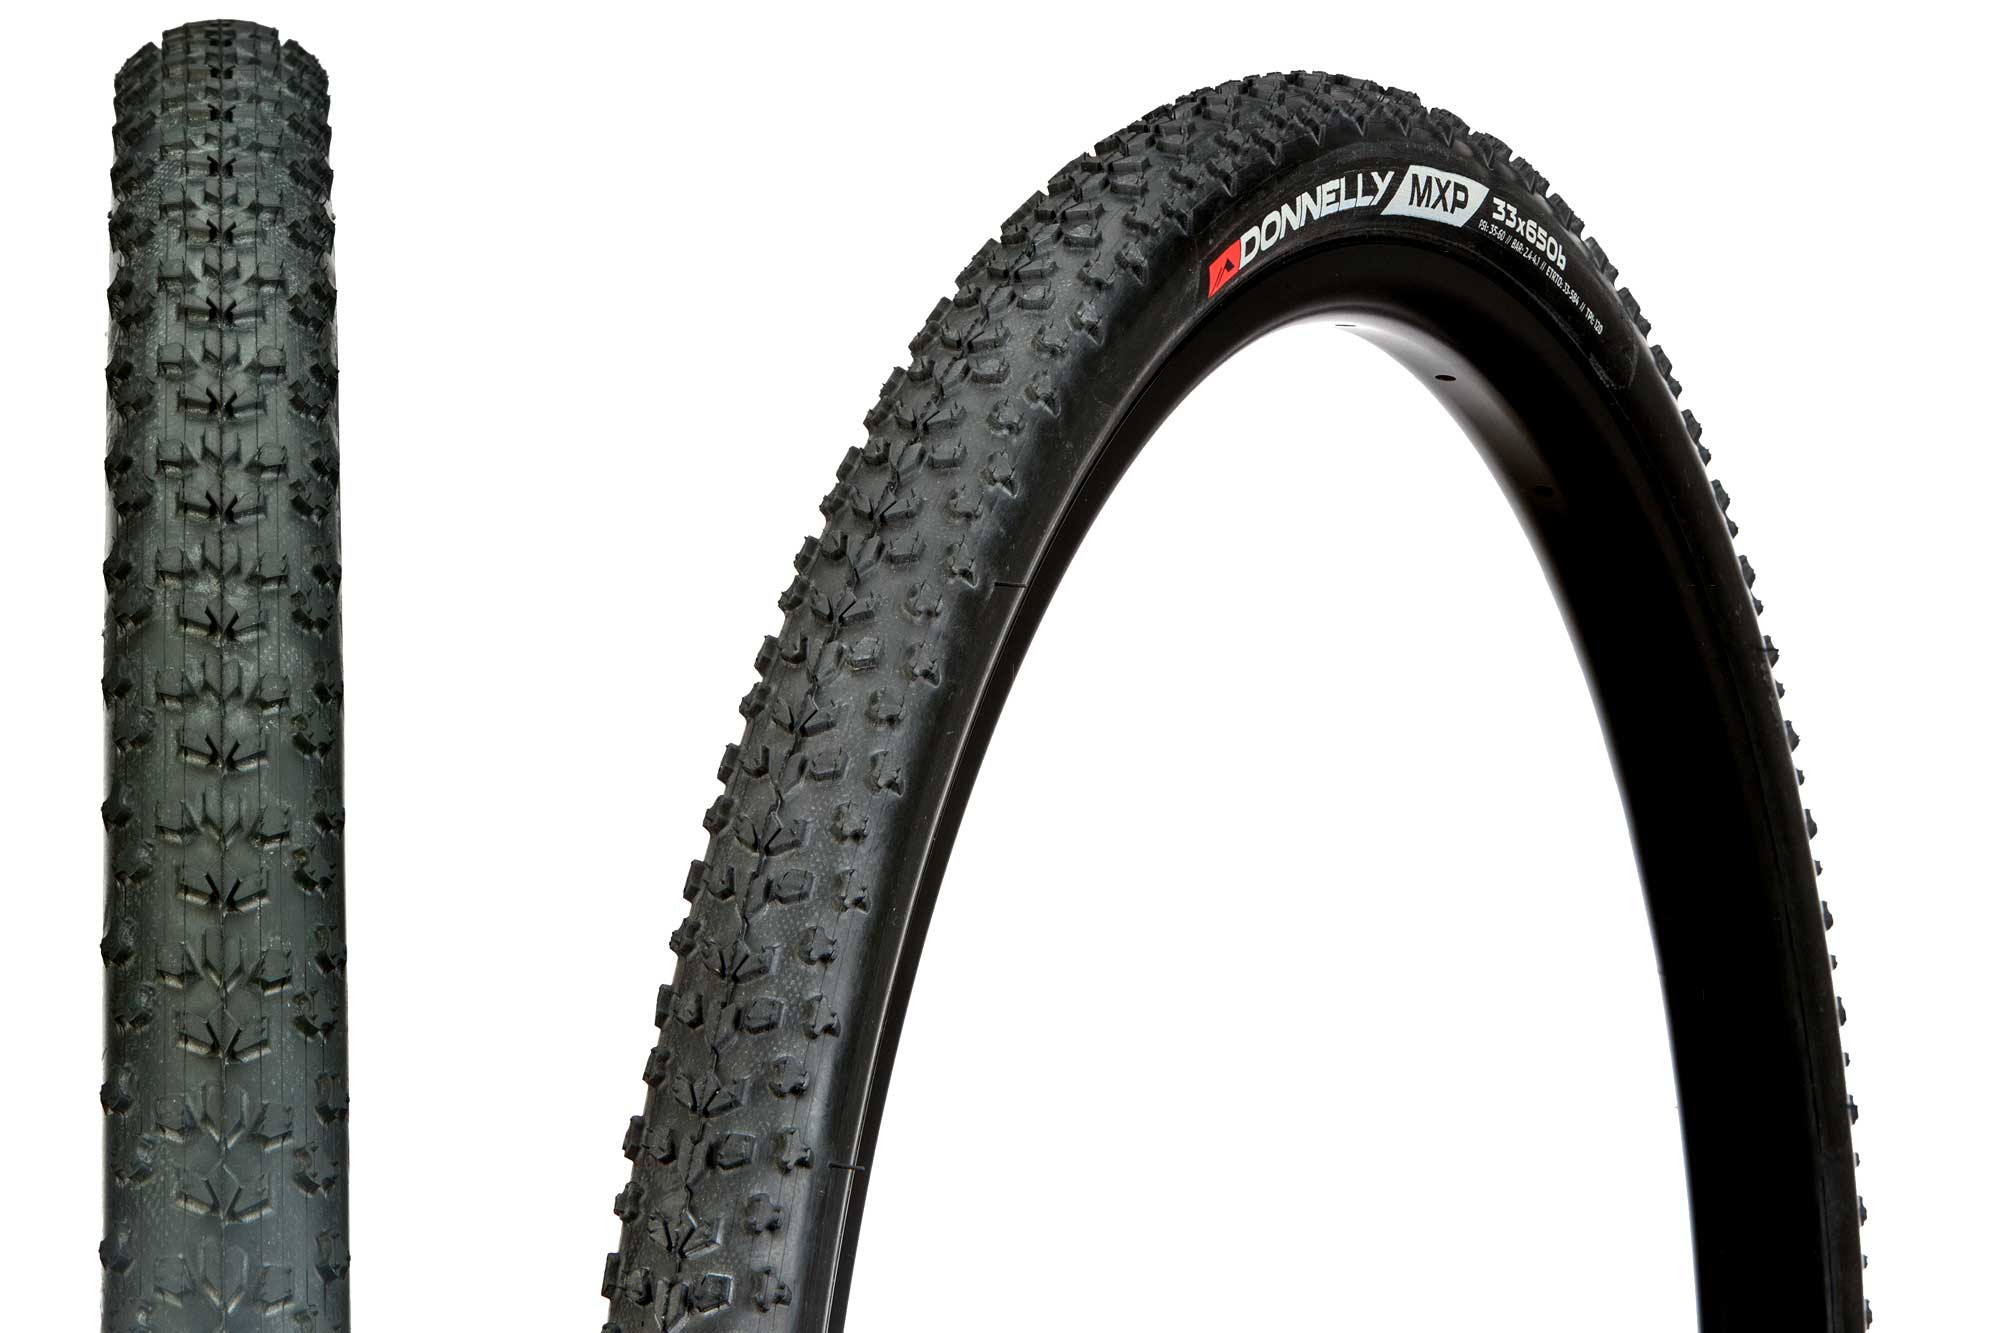 Donnelly spins up new 650b Strada & X'Plor tires for Road Plus gravel bikes